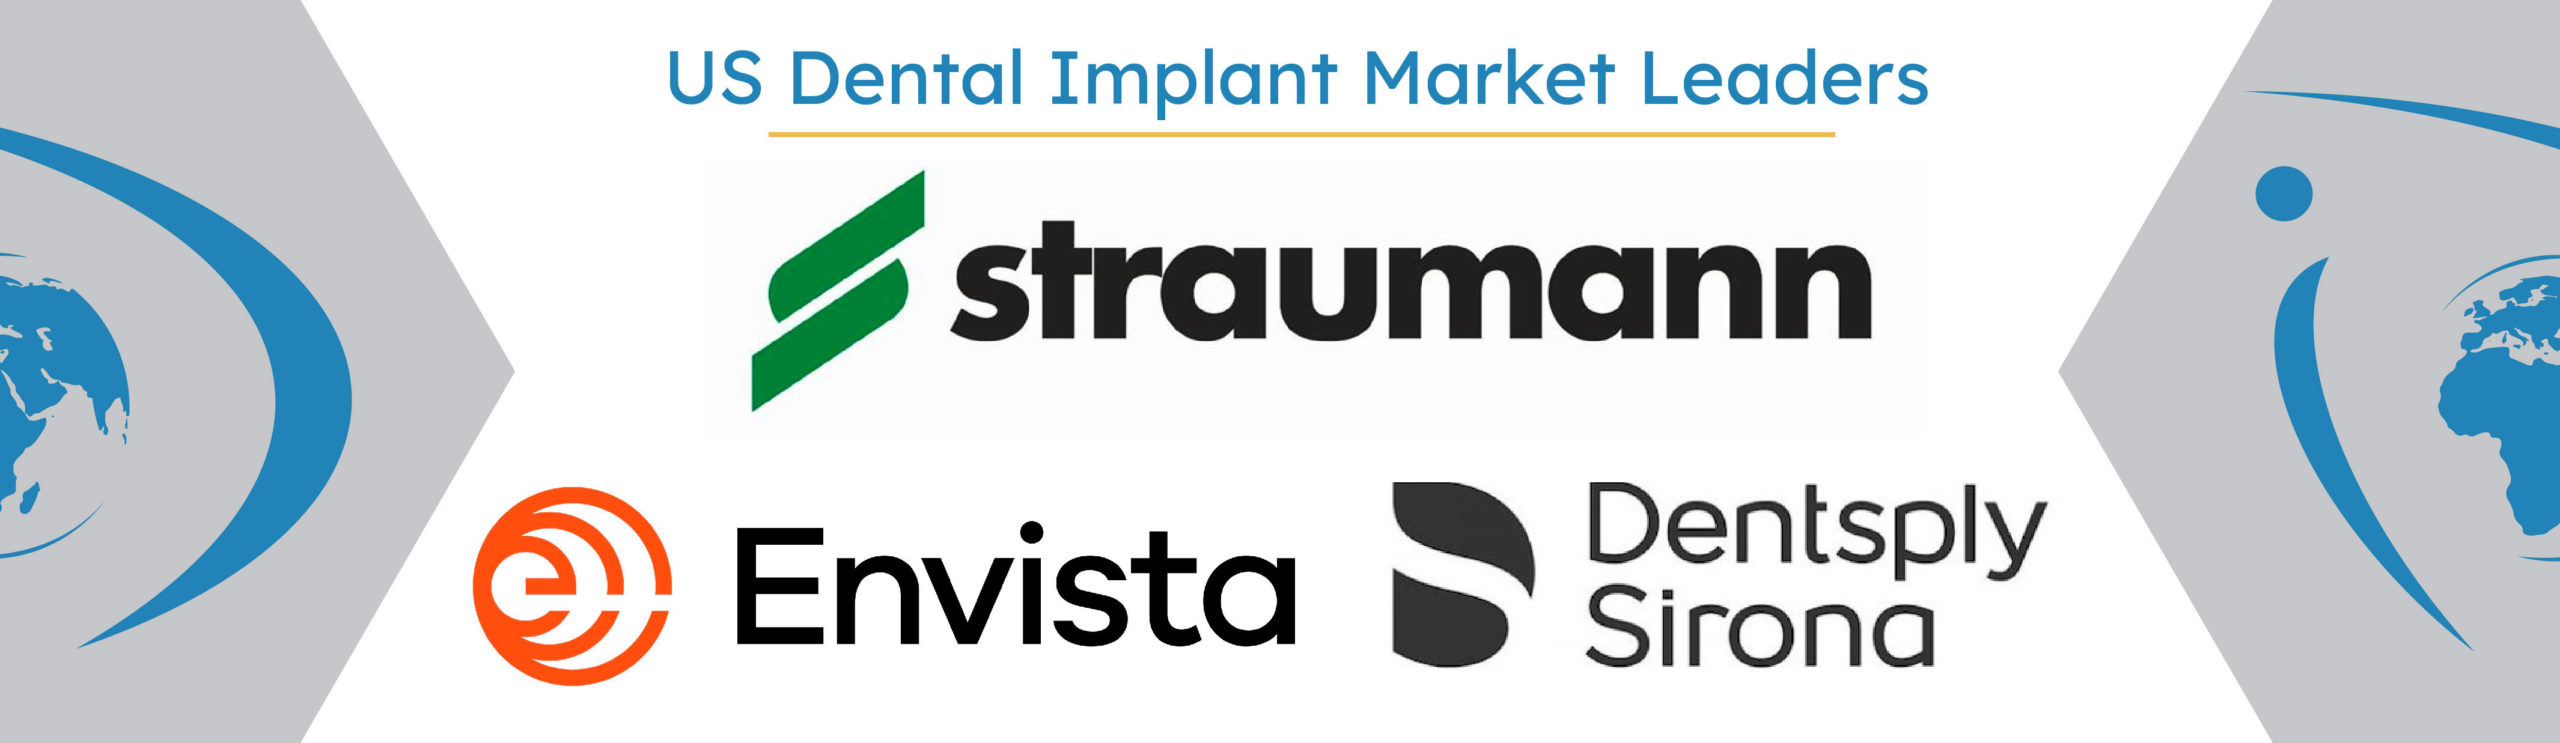 Leading Dental Implant Companies in the United States